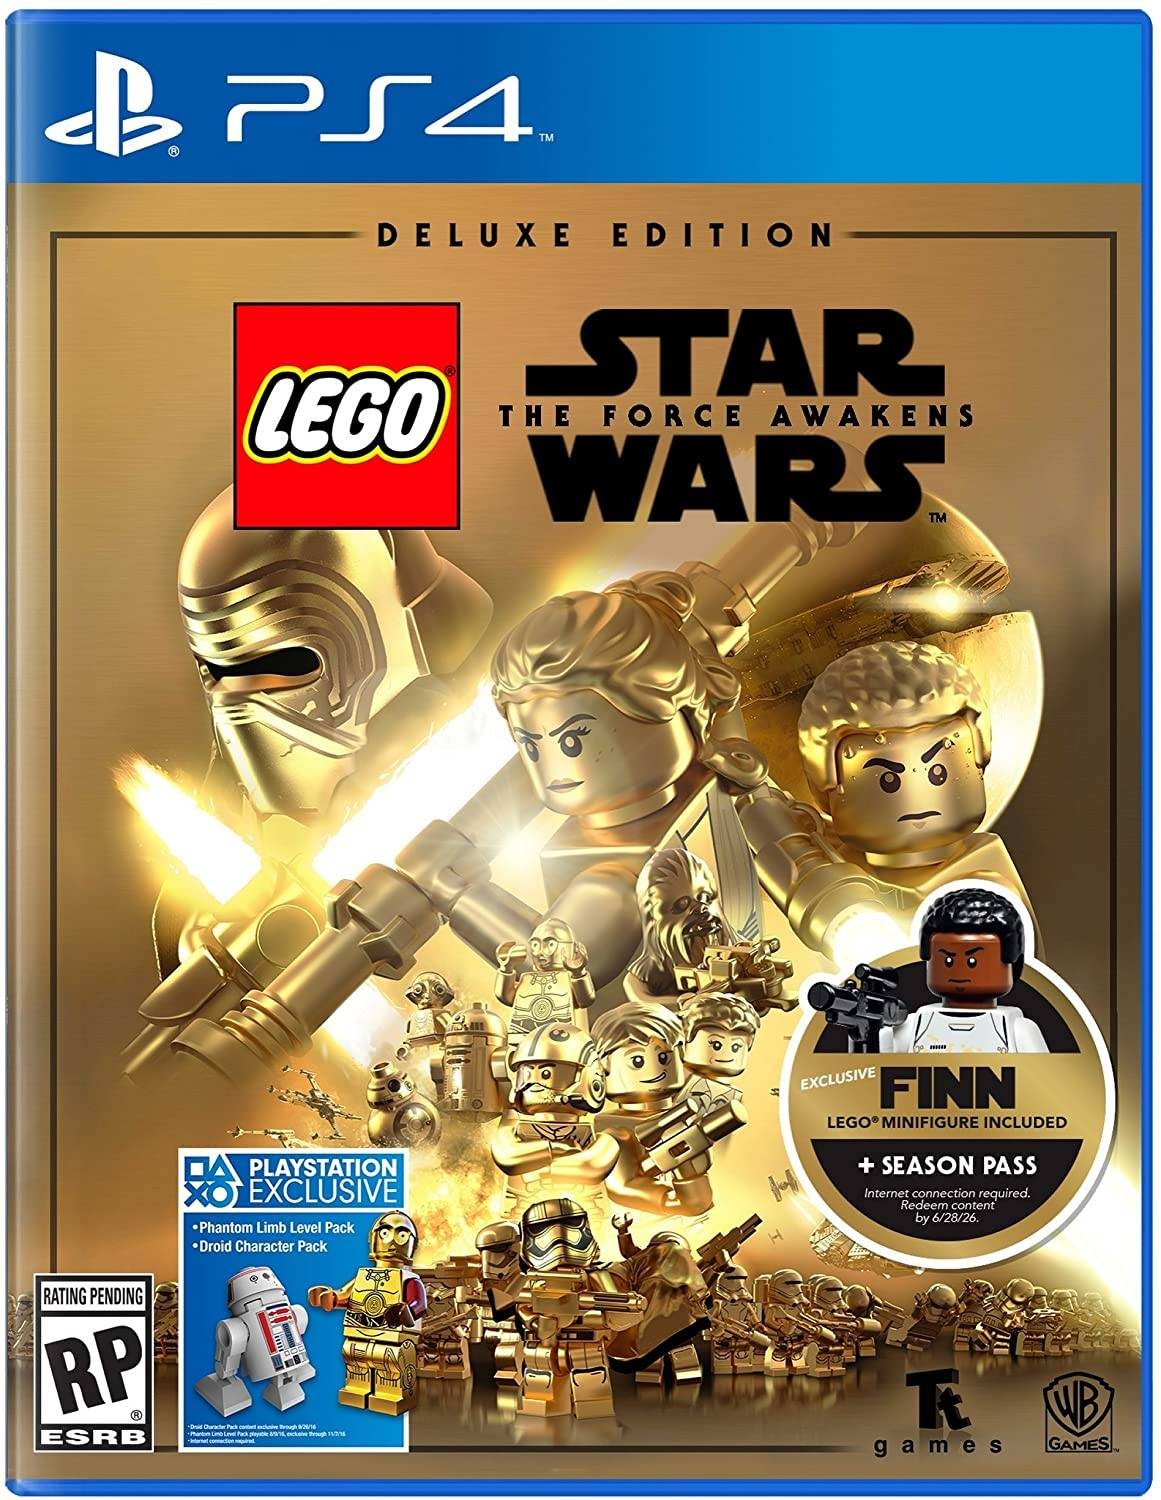 LEGO Star Wars- The Force Awakens Deluxe Edition ps4